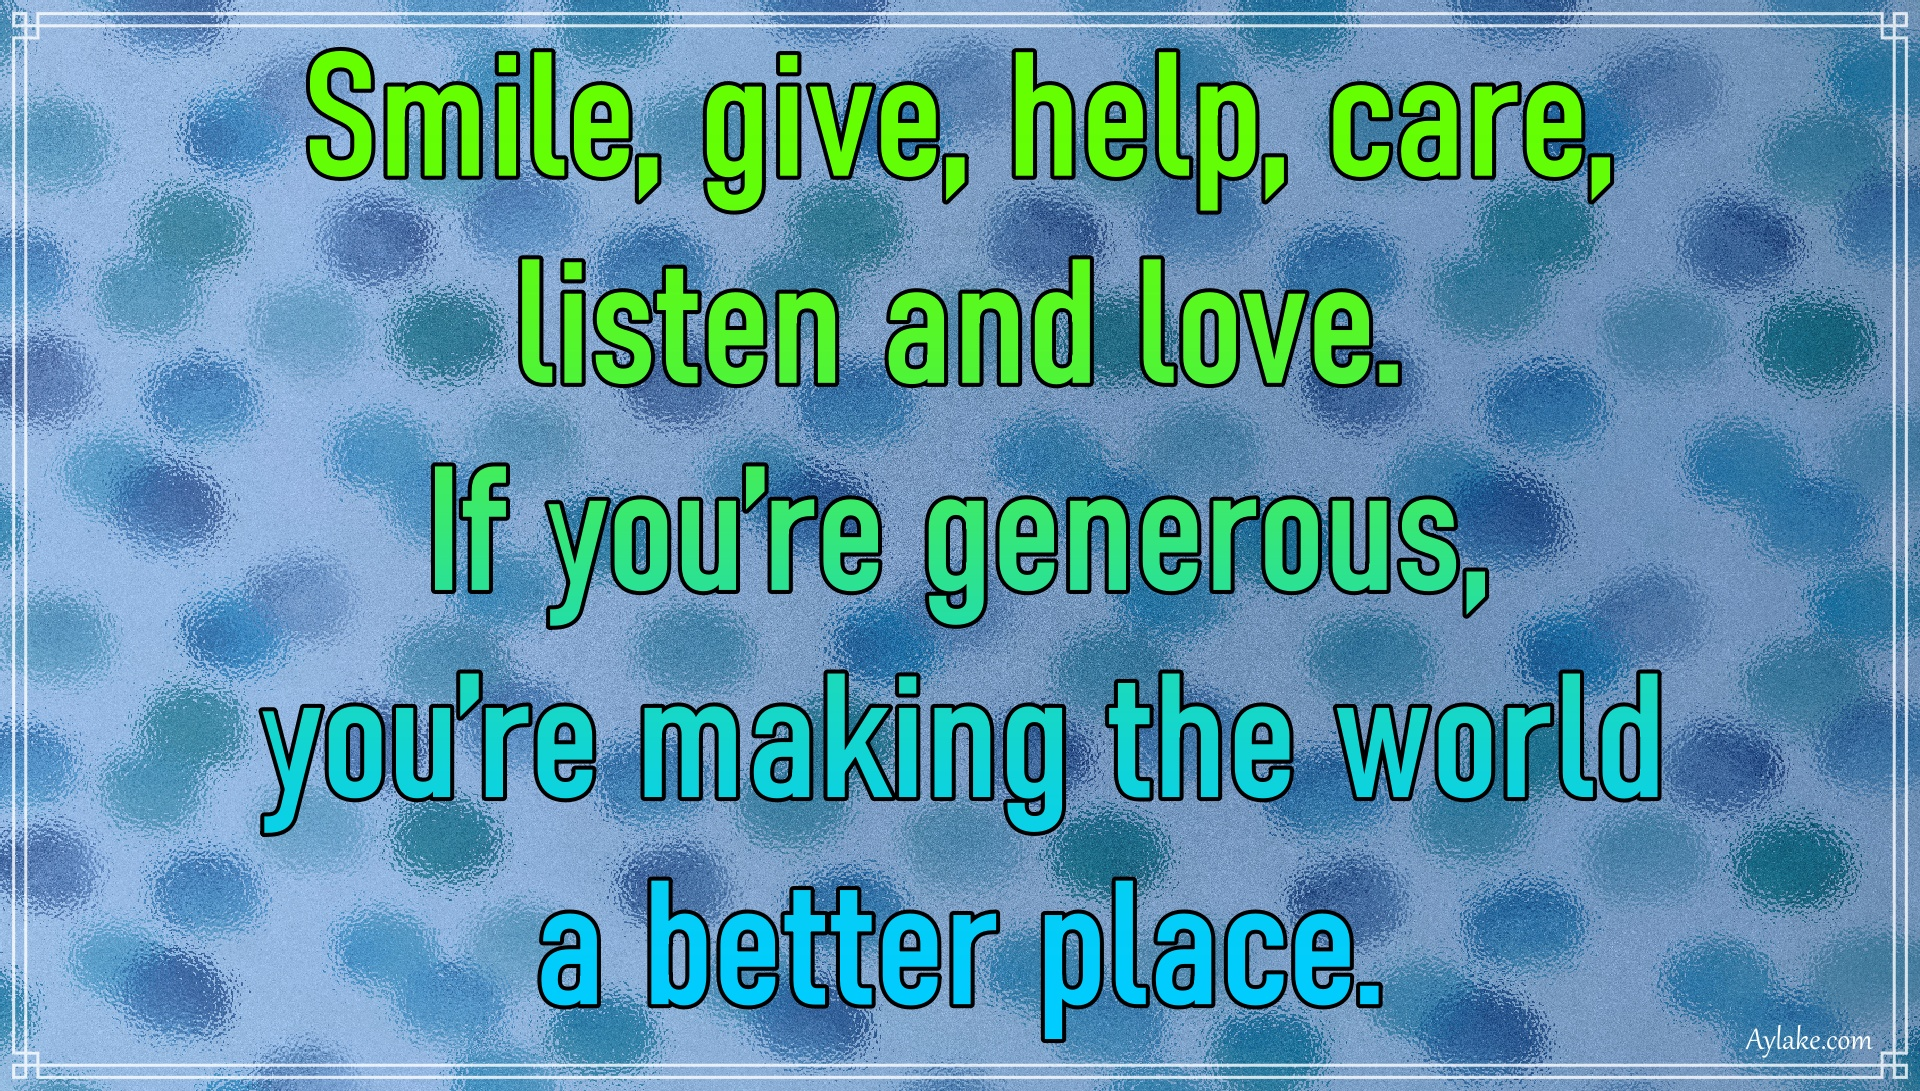 Kindness quotes Smile give help care listen and love Aylake